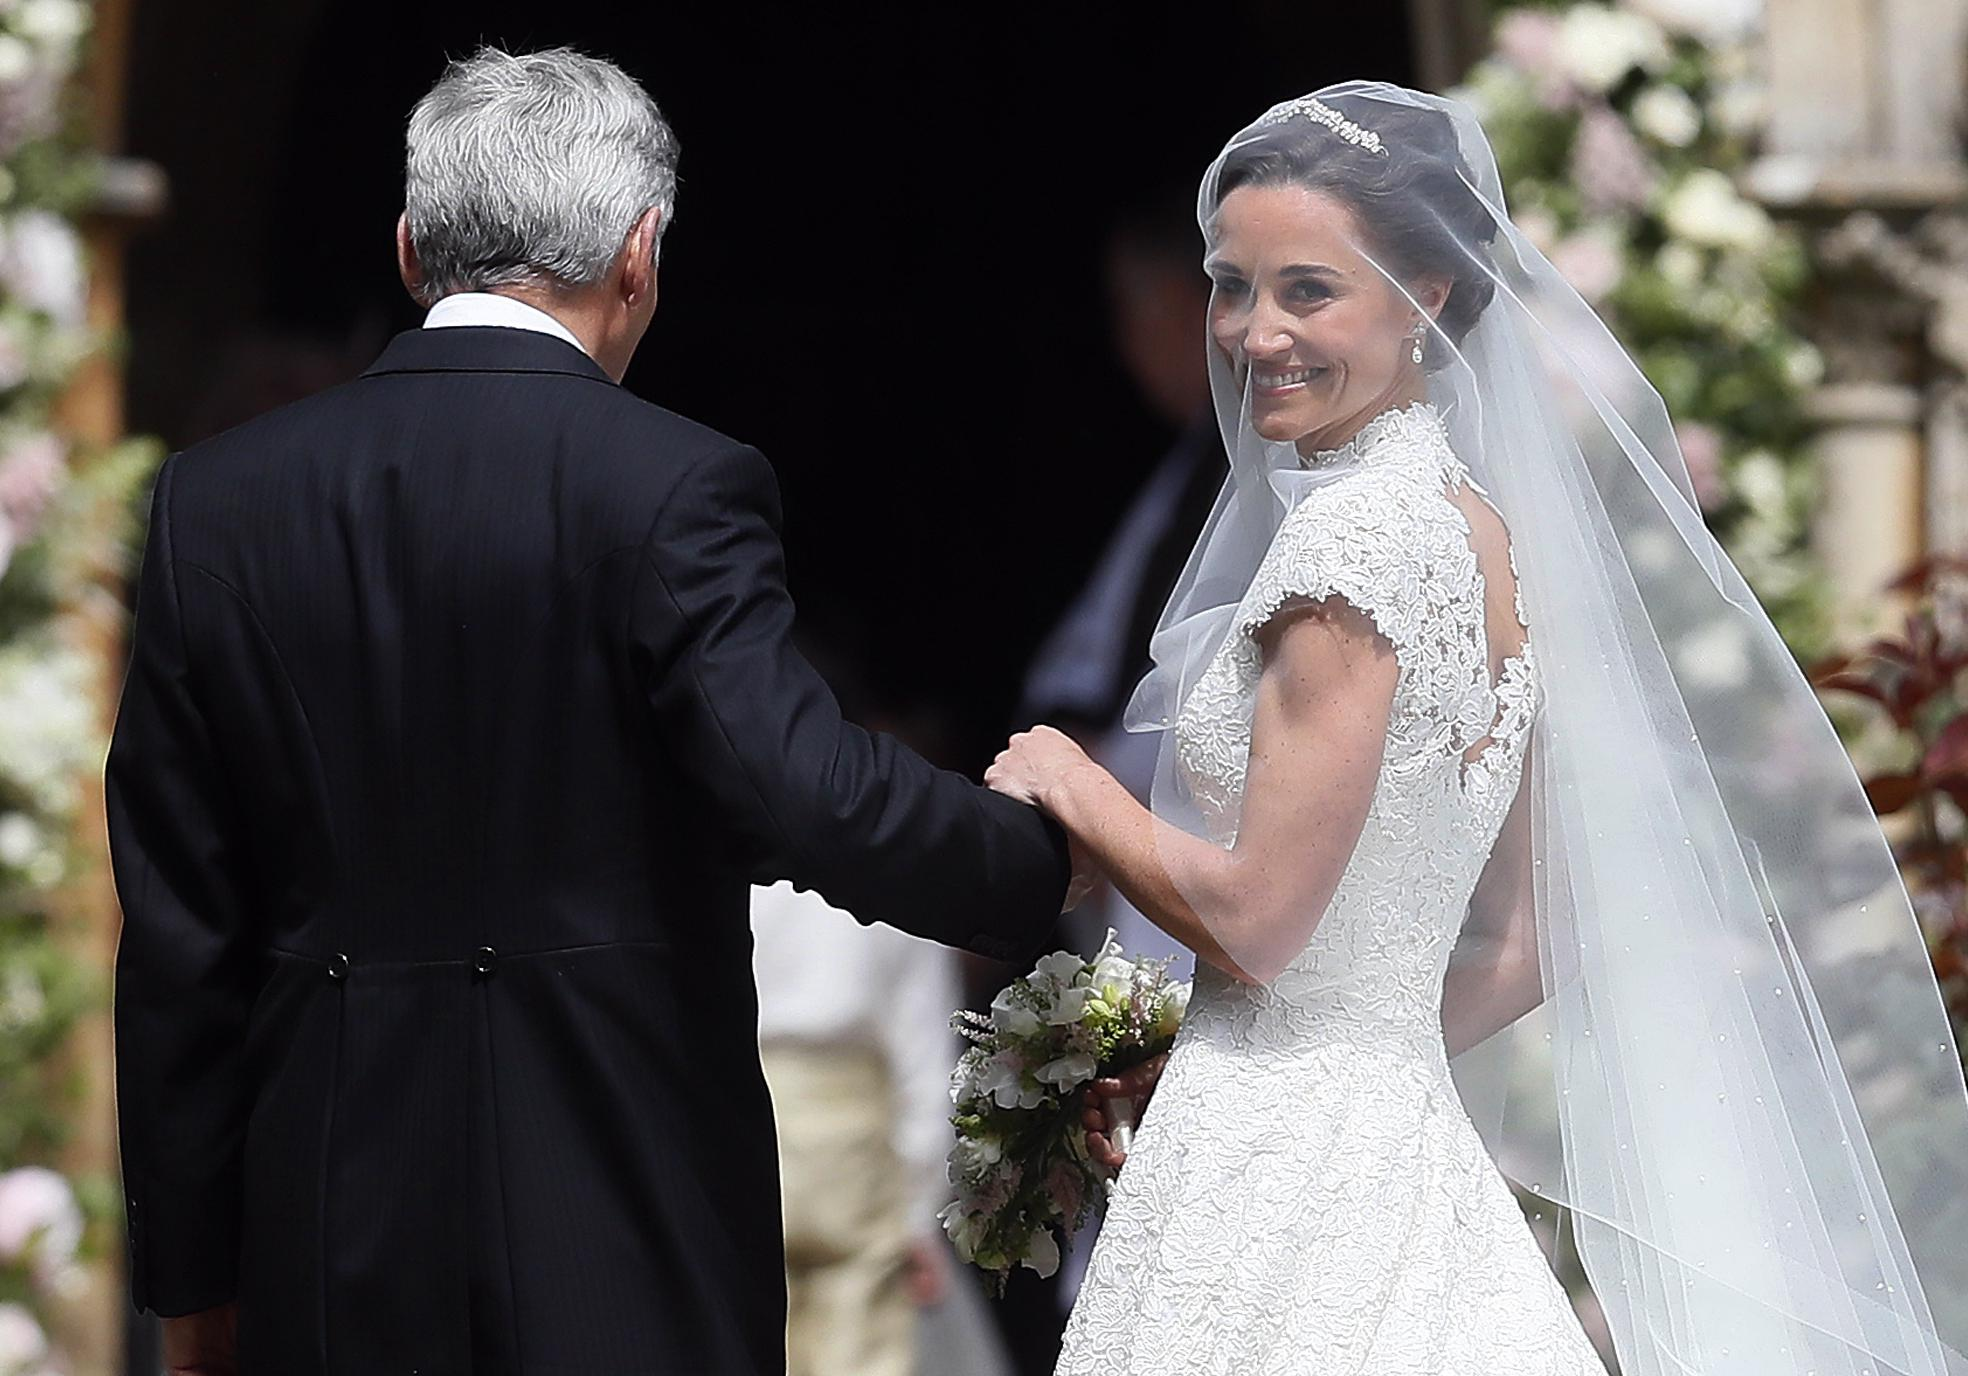 mariage de pippa middleton george et charlotte harry toutes les photos de la journ e elle. Black Bedroom Furniture Sets. Home Design Ideas